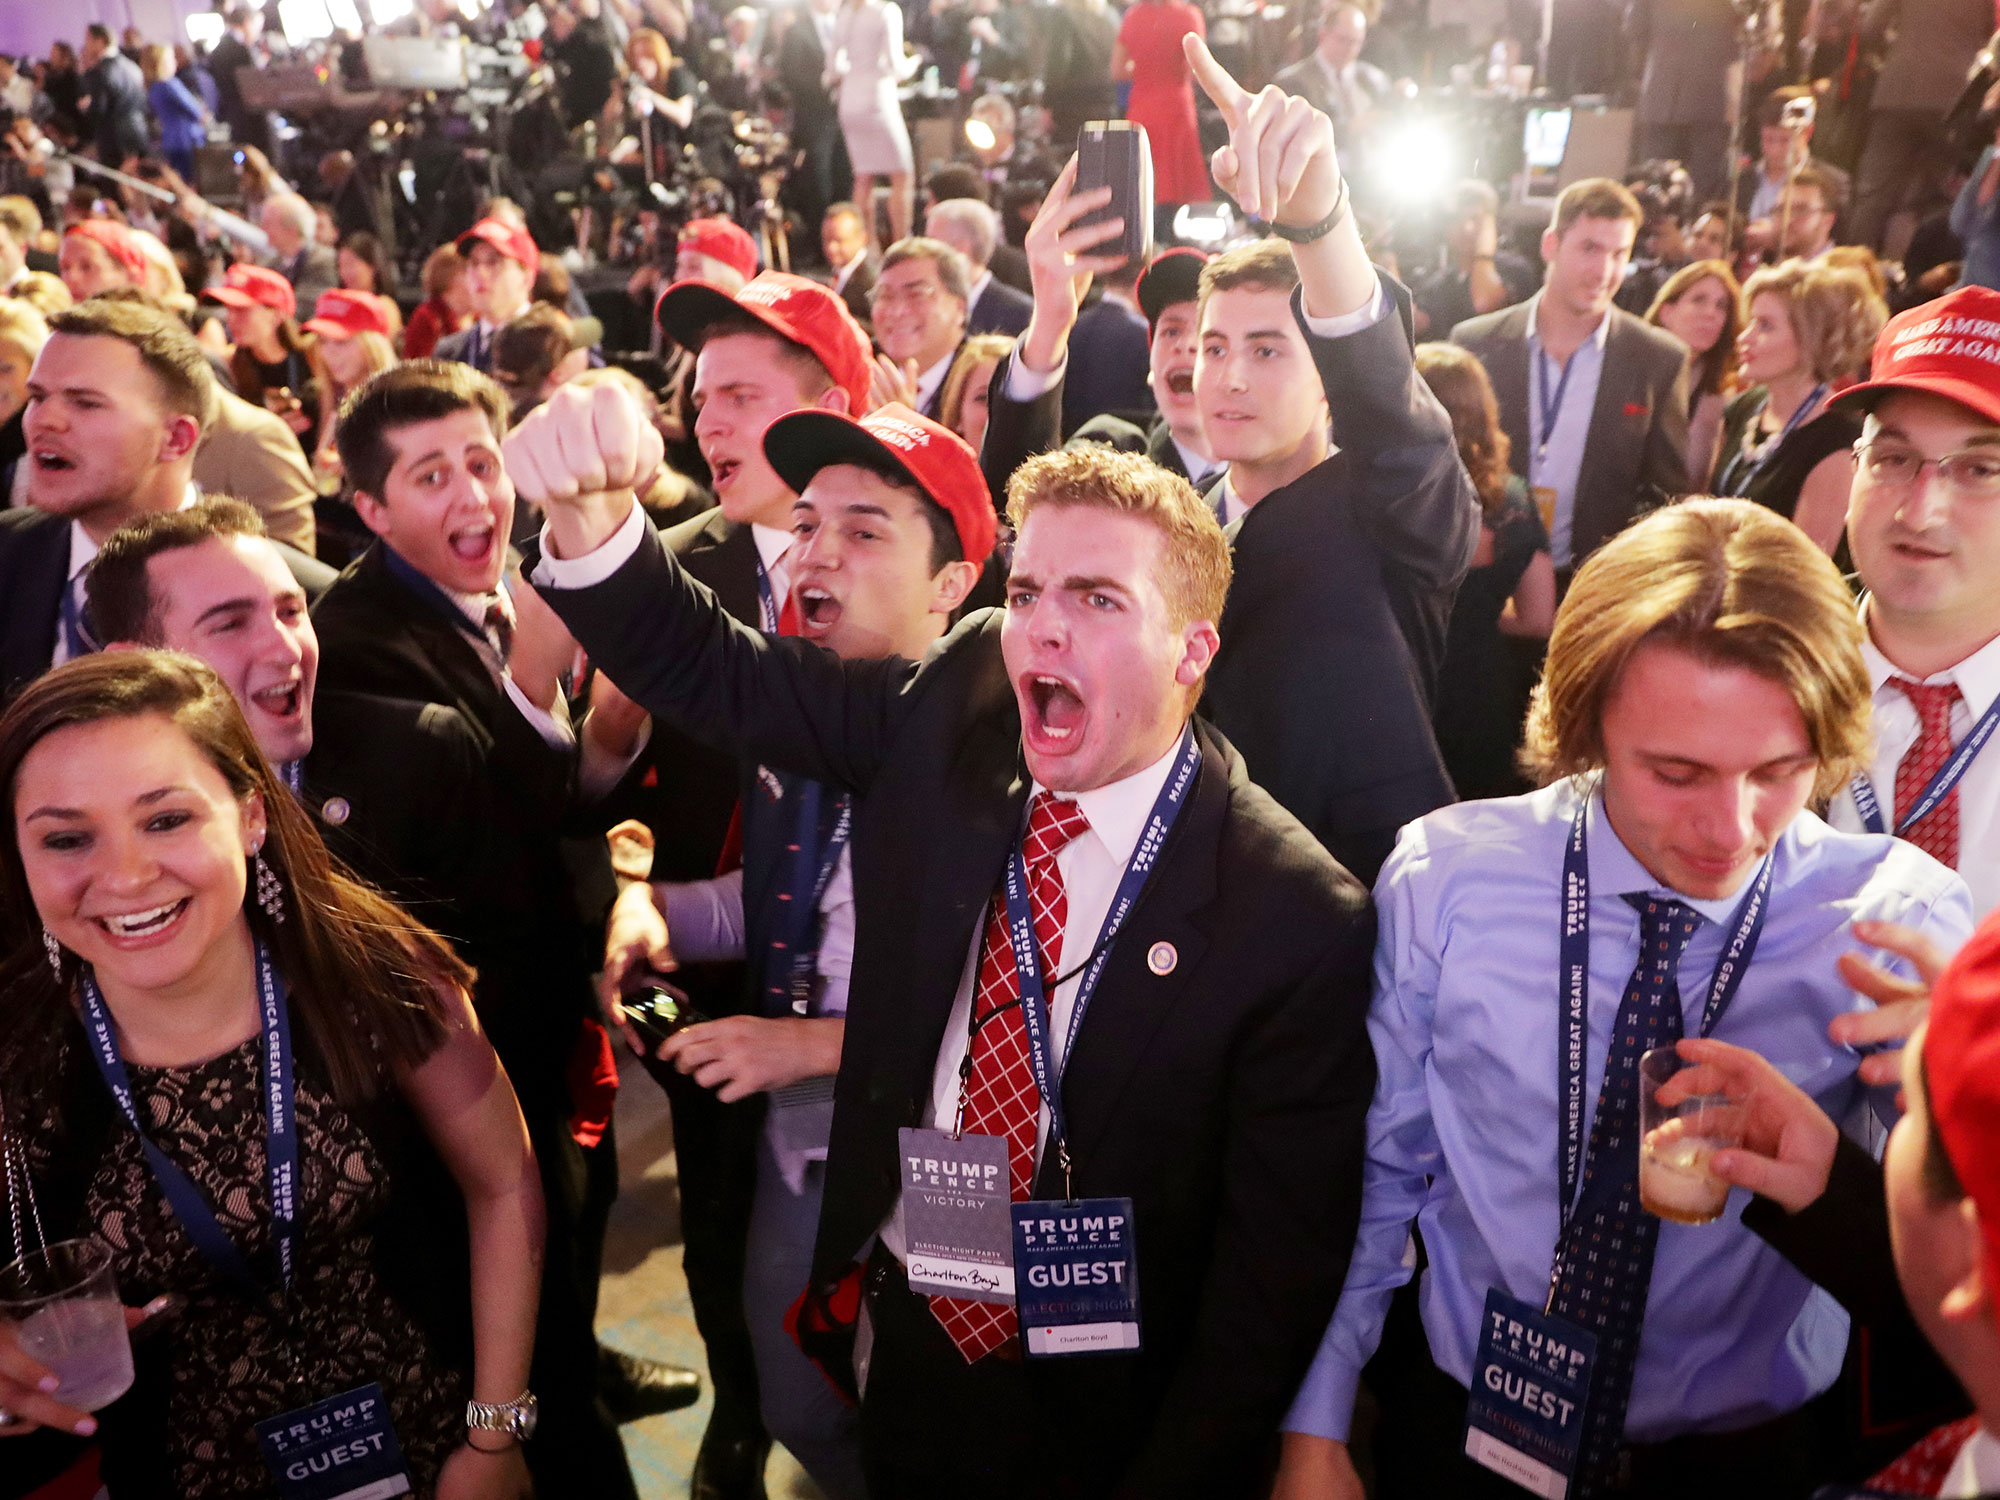 NEW YORK, NY - NOVEMBER 08: People cheer as voting results for Florida come in at Republican presidential nominee Donald Trump's election night event at the New York Hilton Midtown on November 8, 2016 in New York City. Americans today will choose between Republican presidential nominee Donald Trump and Democratic presidential nominee Hillary Clinton as they go to the polls to vote for the next president of the United States. (Photo by Chip Somodevilla/Getty Images)